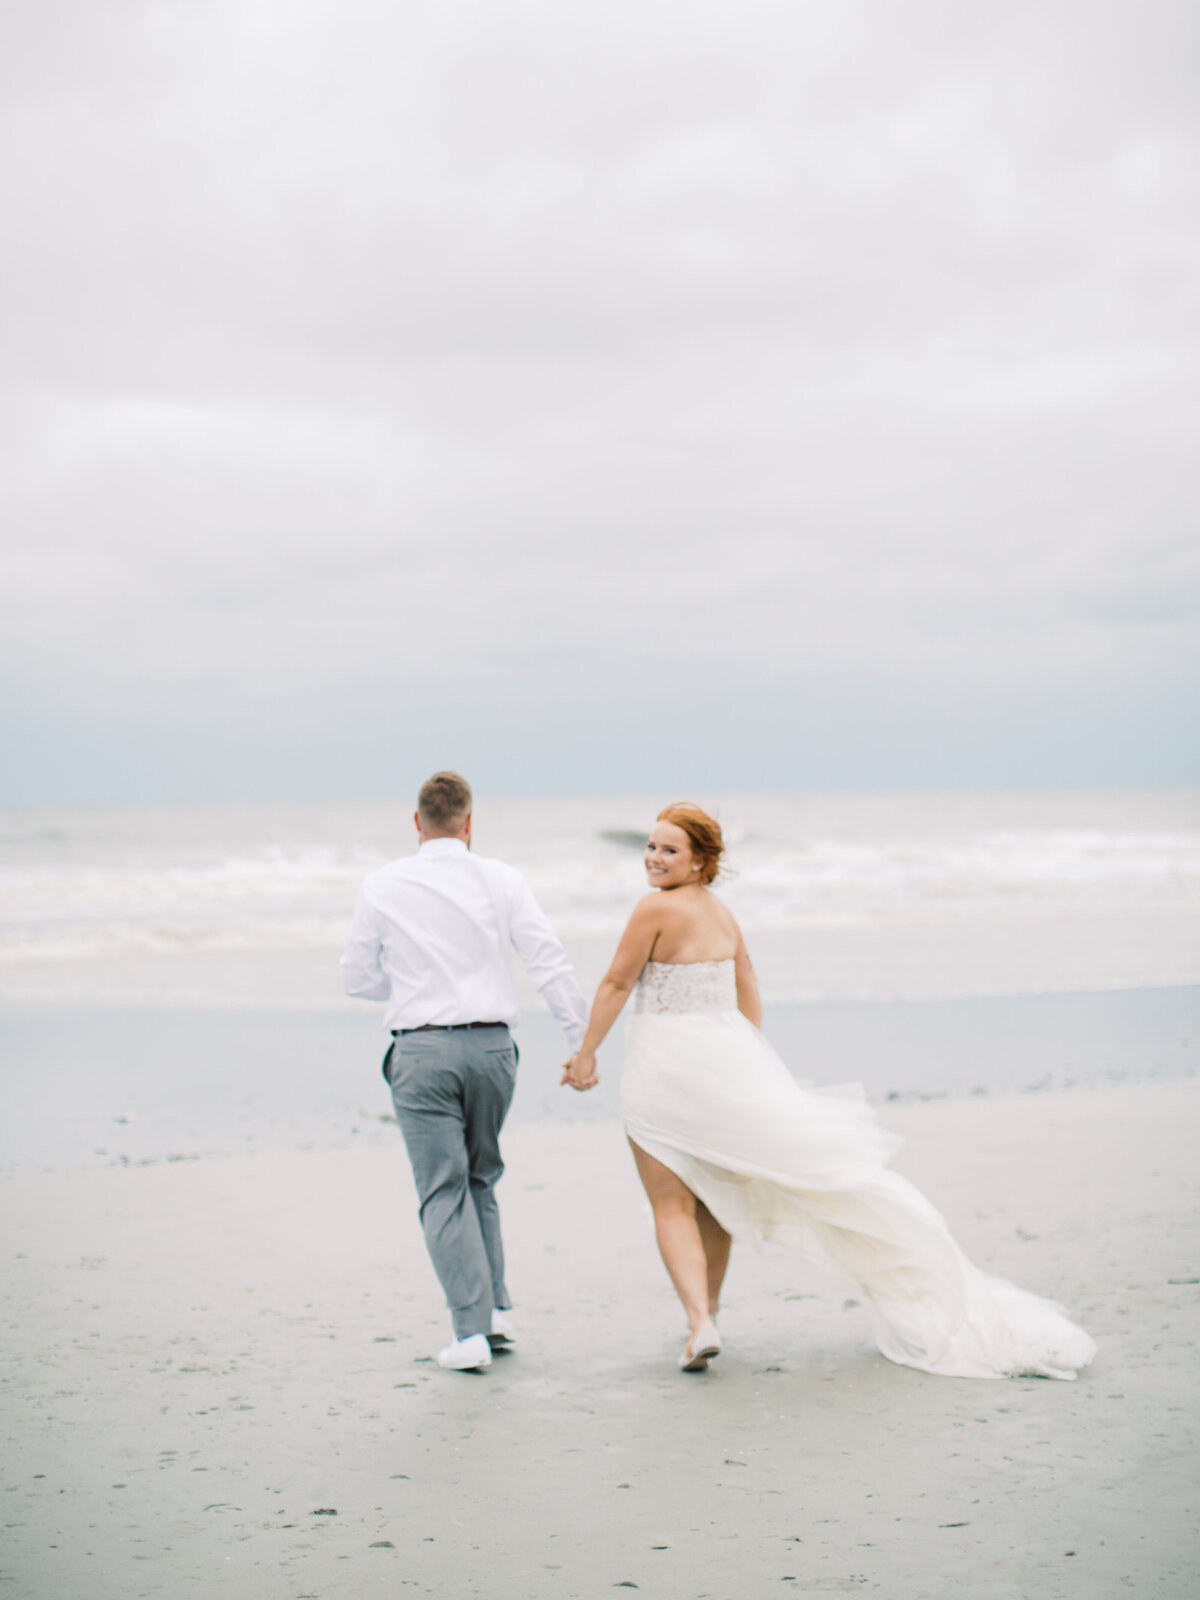 Charleston Wedding Photographer | Beaufort Wedding Photographer | Savannah Wedding Photographer | Santa Barbara Wedding Photographer | San Luis Obispo Wedding Photographer-26